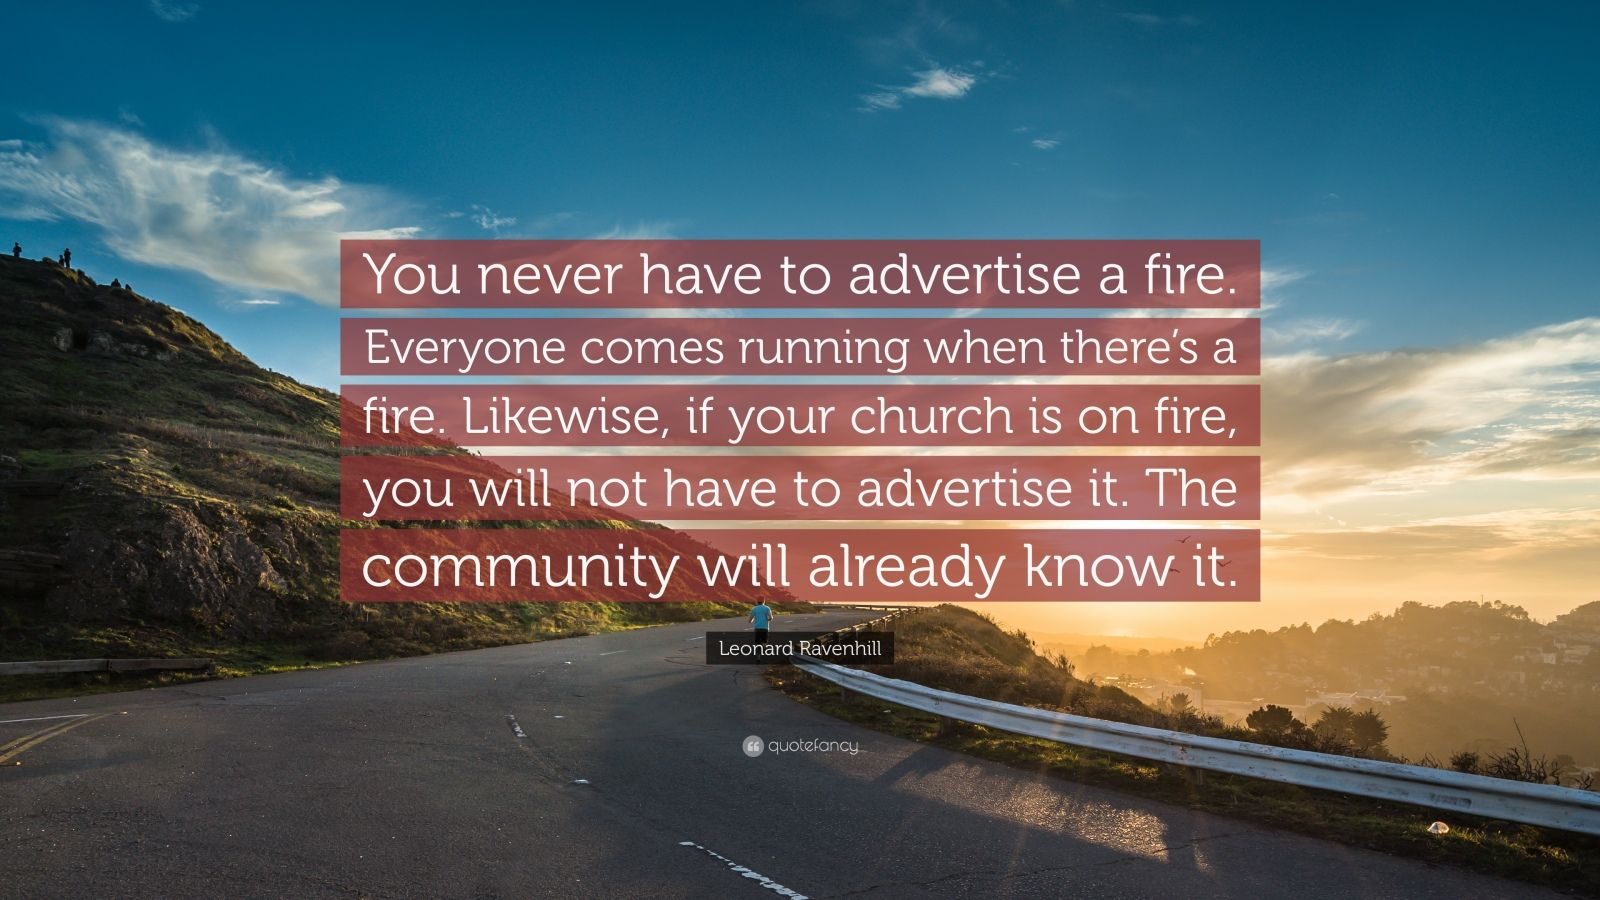 "Leonard Ravenhill Quote: ""You never have to advertise a fire. Everyone comes running when there's a fire. Likewise, if your church is on fire, you will not have to advertise it. The community will already know it."""